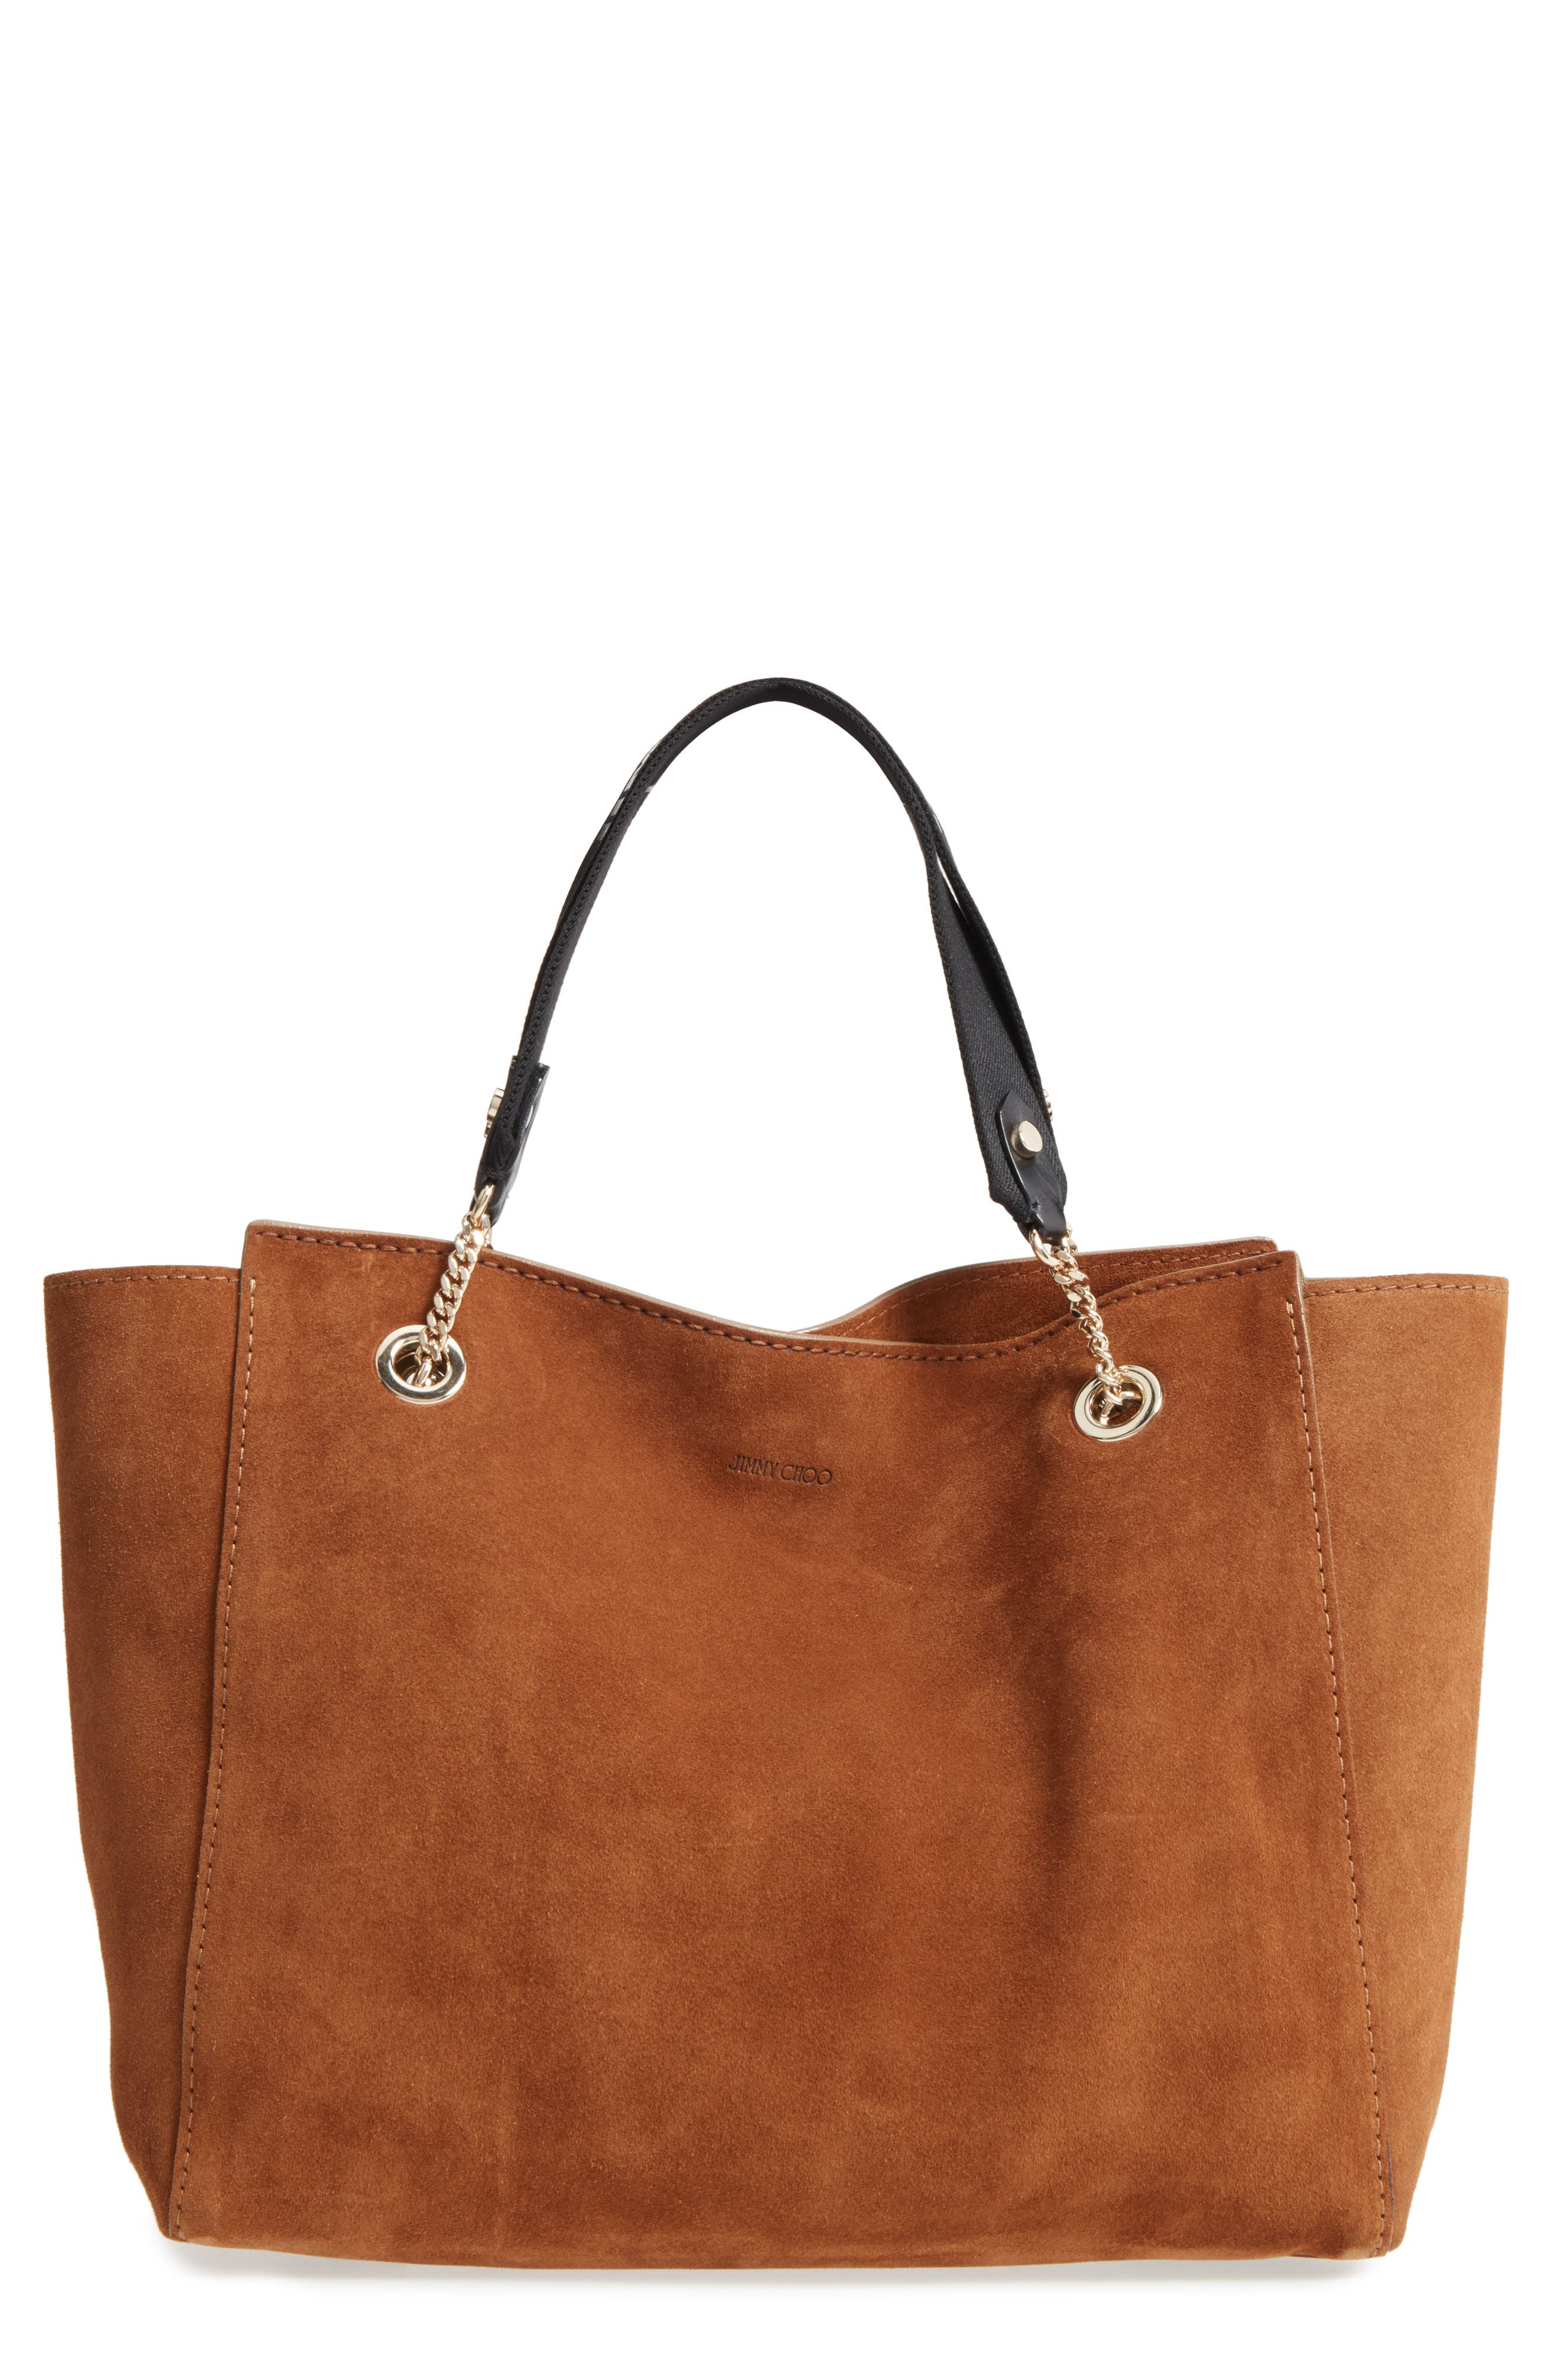 Main Image - Jimmy Choo Flo Suede Tote